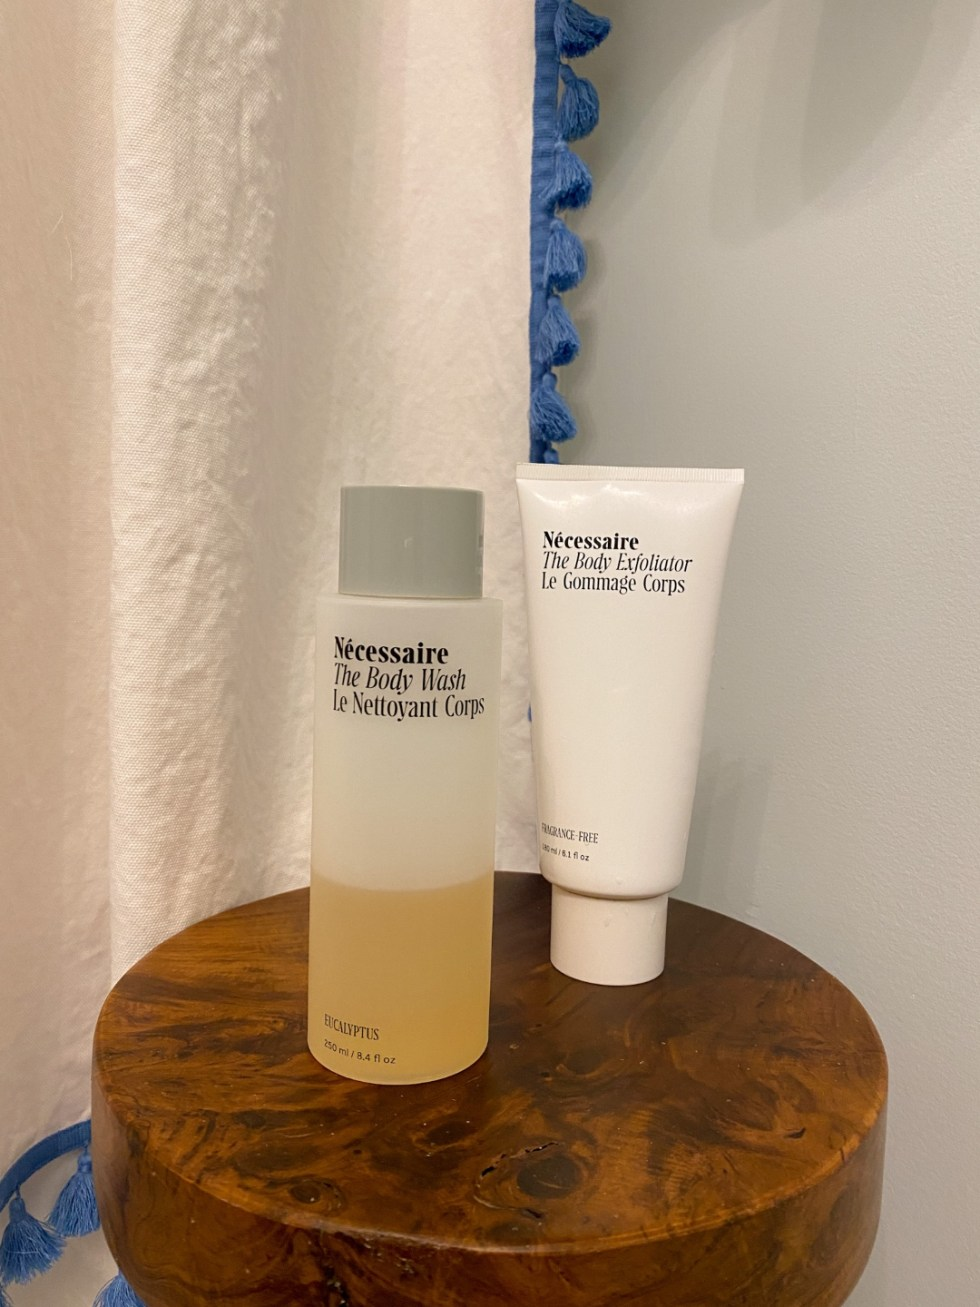 Recent Favorites: Top 10 Things I've Bought that Are Worth the Hype - I'm Fixin' To - @imfixintoblog | Recent Favorites by popular NC life and style blog, I'm Fixin' To: image of a bottle of Necessaire body wash and Necessaire body exfoliator.